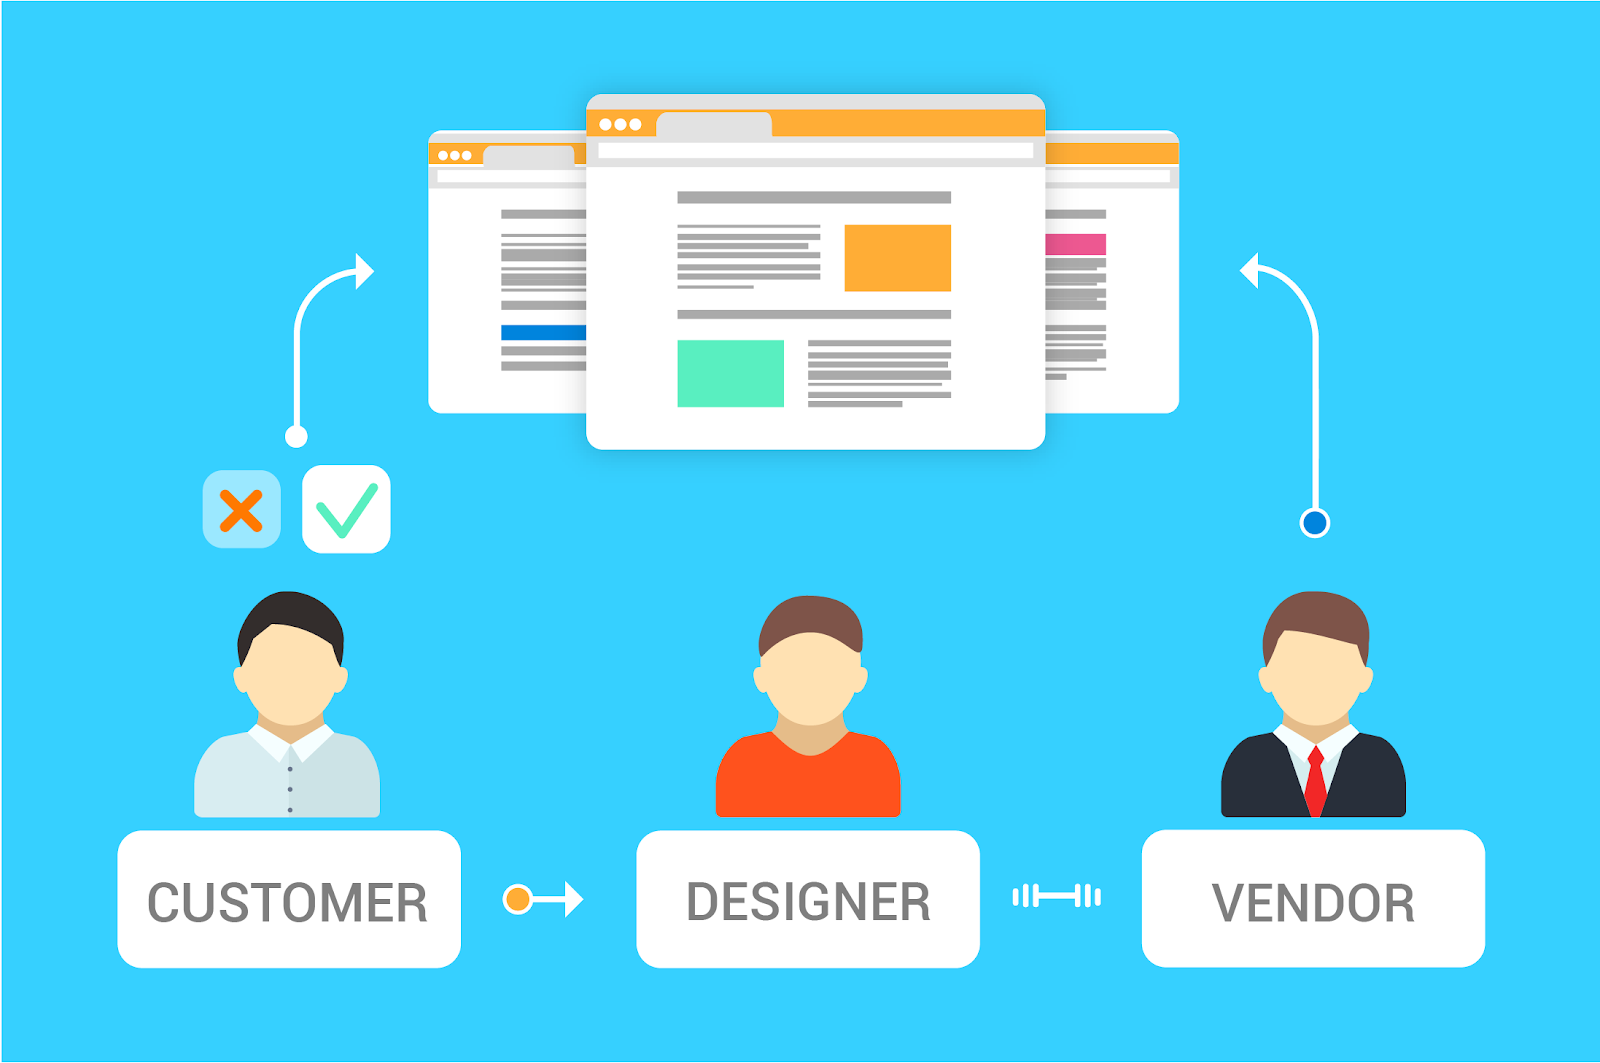 How to use web design techniques to drive sales to your business.